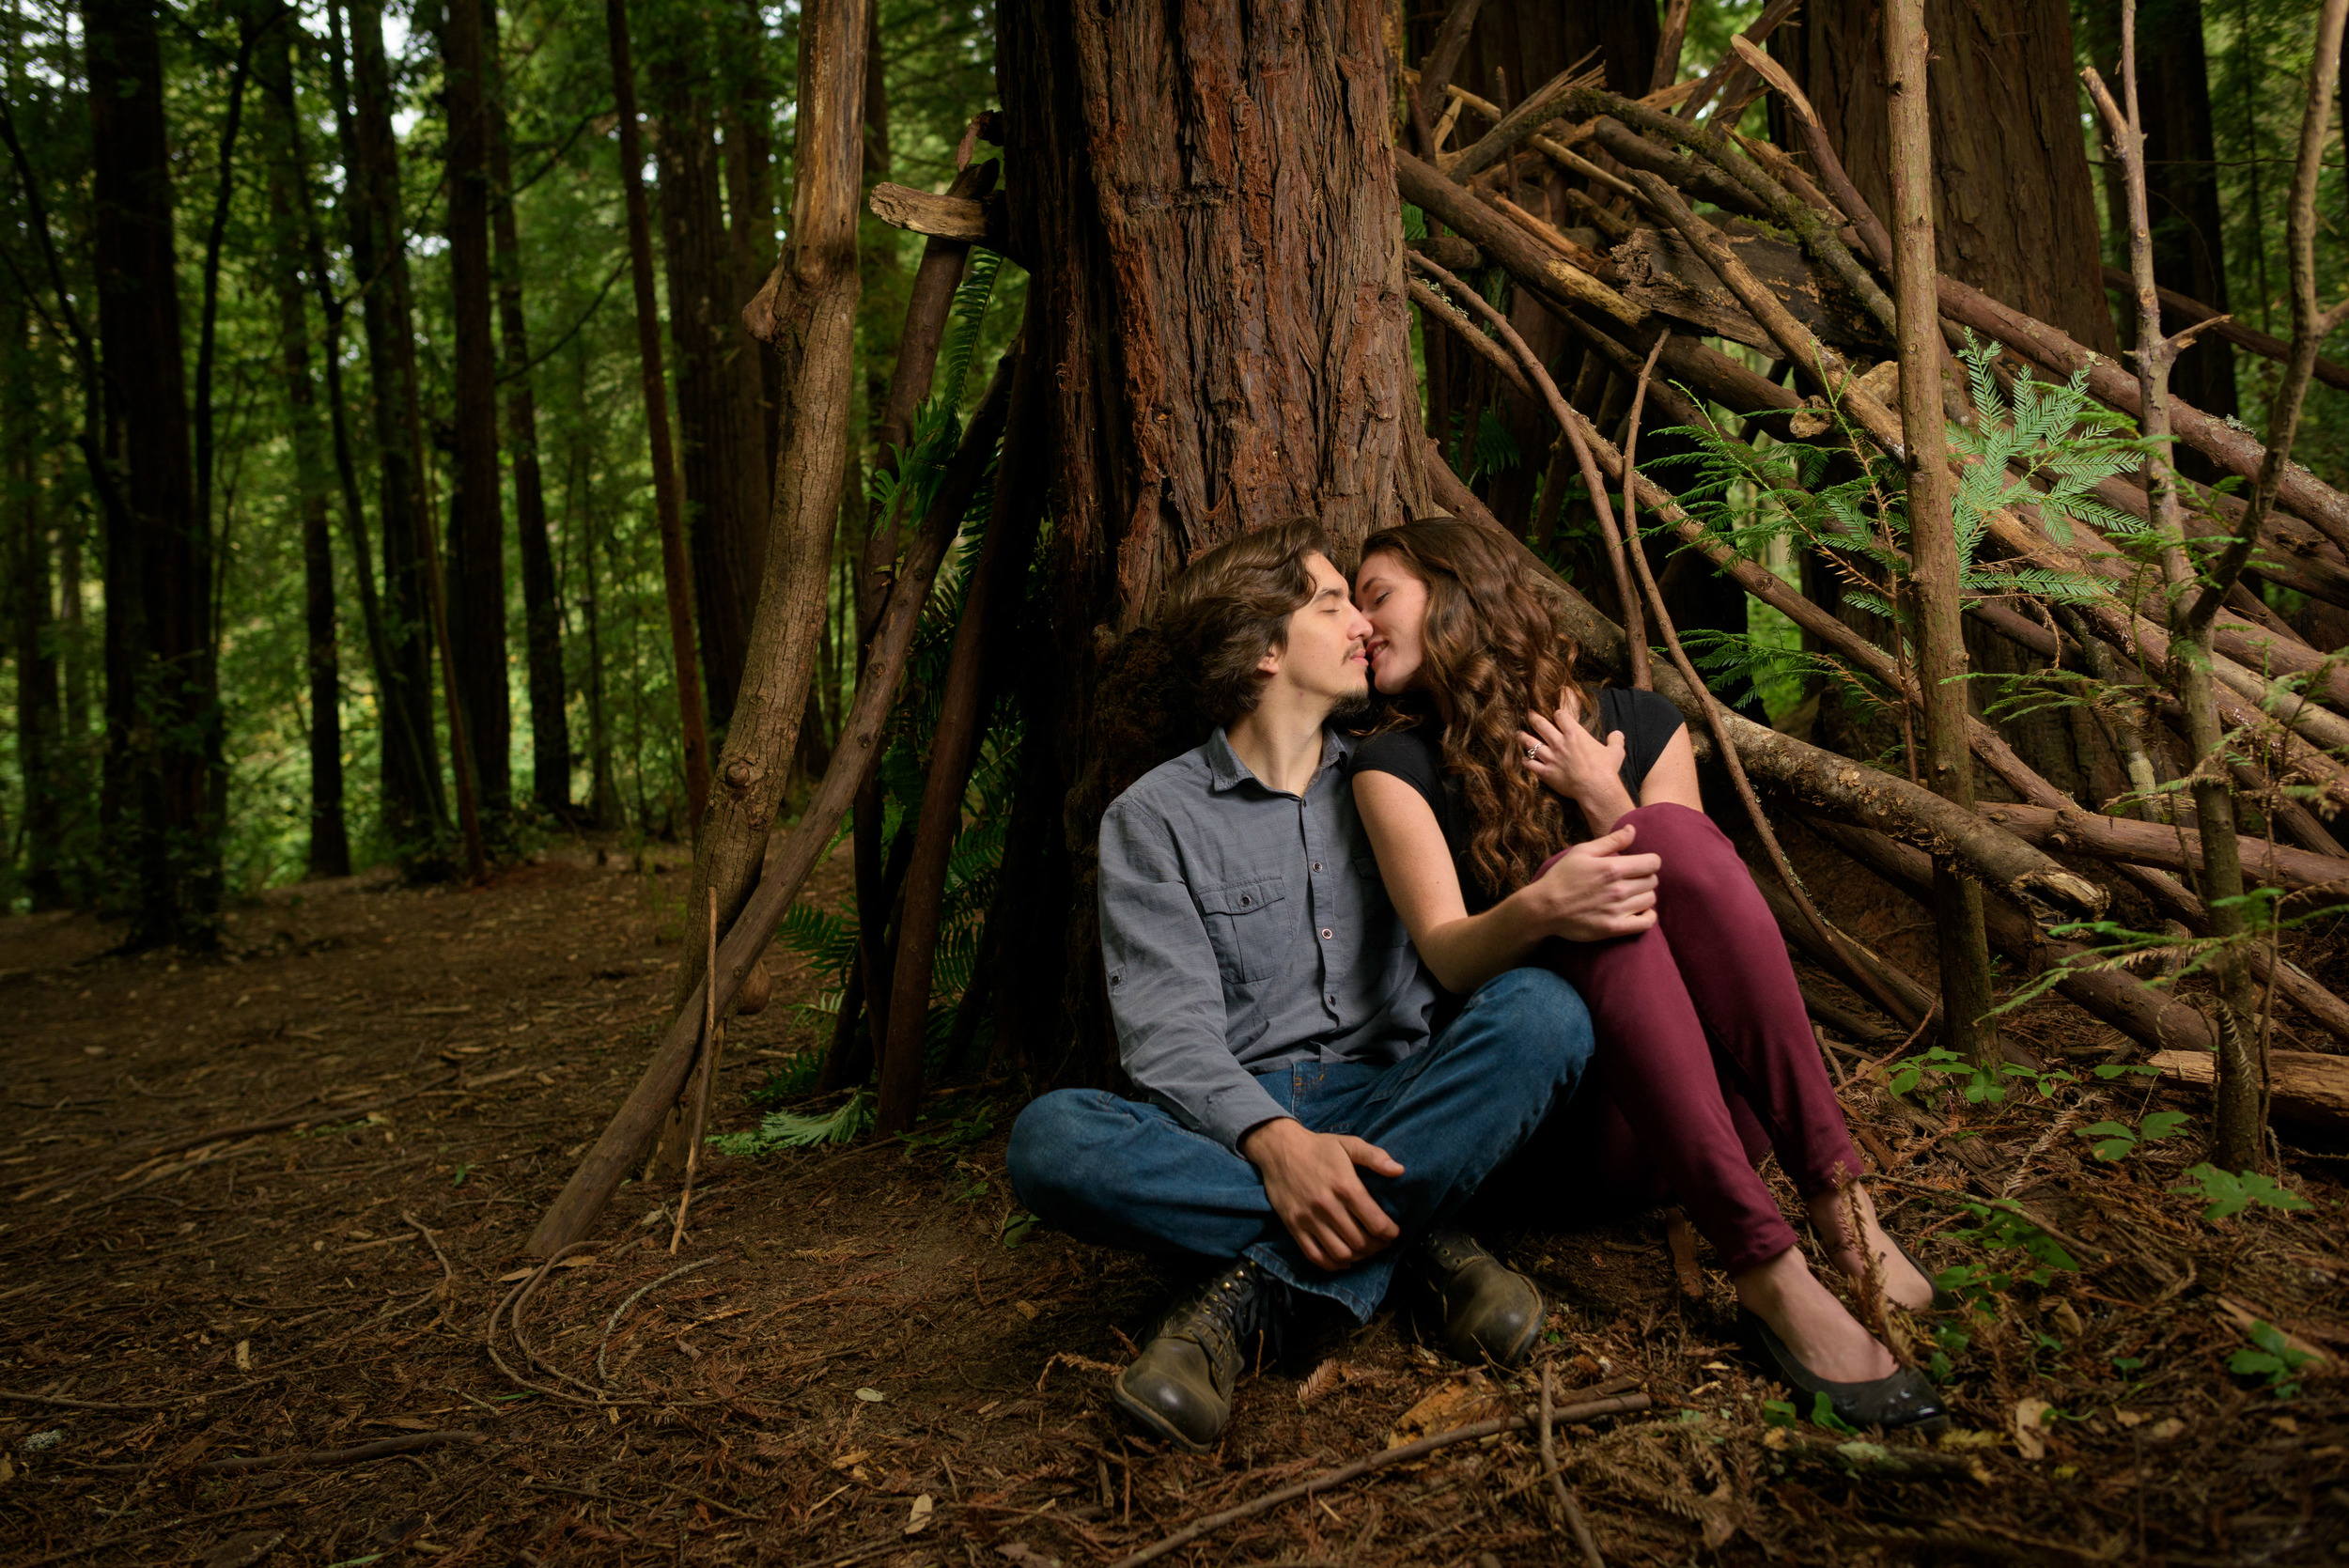 Couple kissing while sitting against tree and makeshift tent - Engagement Photos in Nisene Marks Forest in Aptos, CA - by Bay Area wedding photographer Chris Schmauch